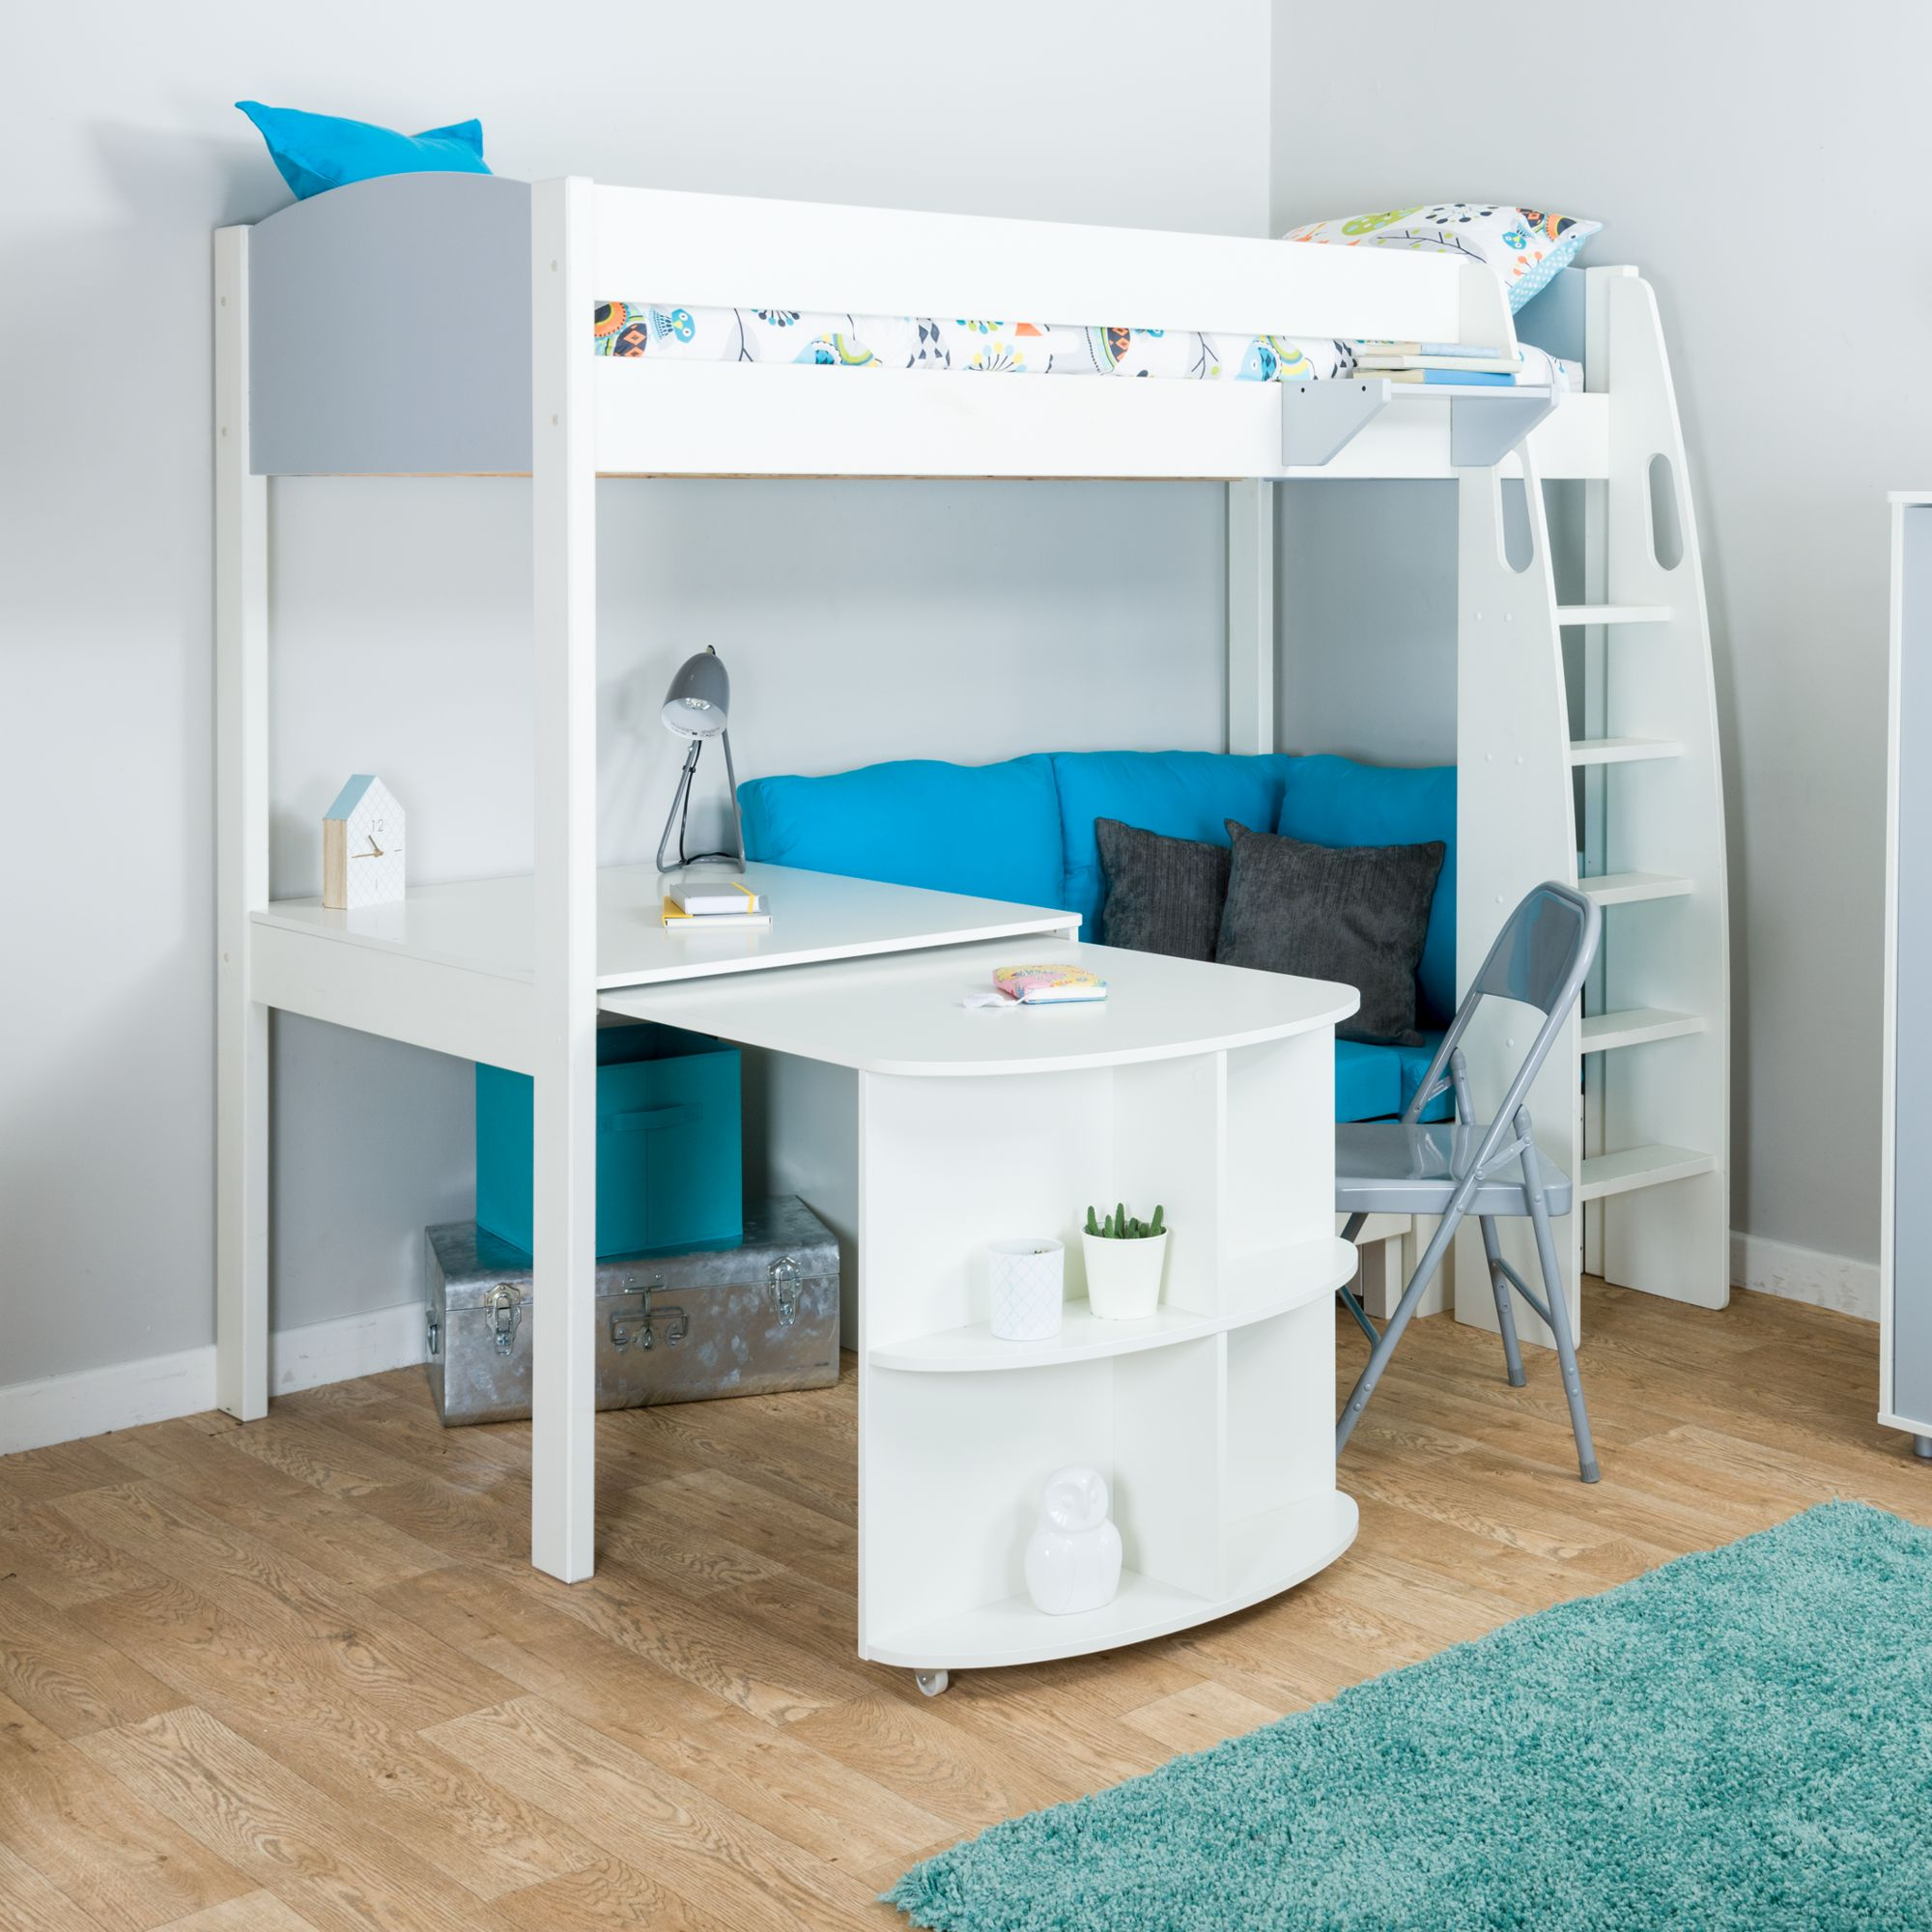 Stompa children's bed range